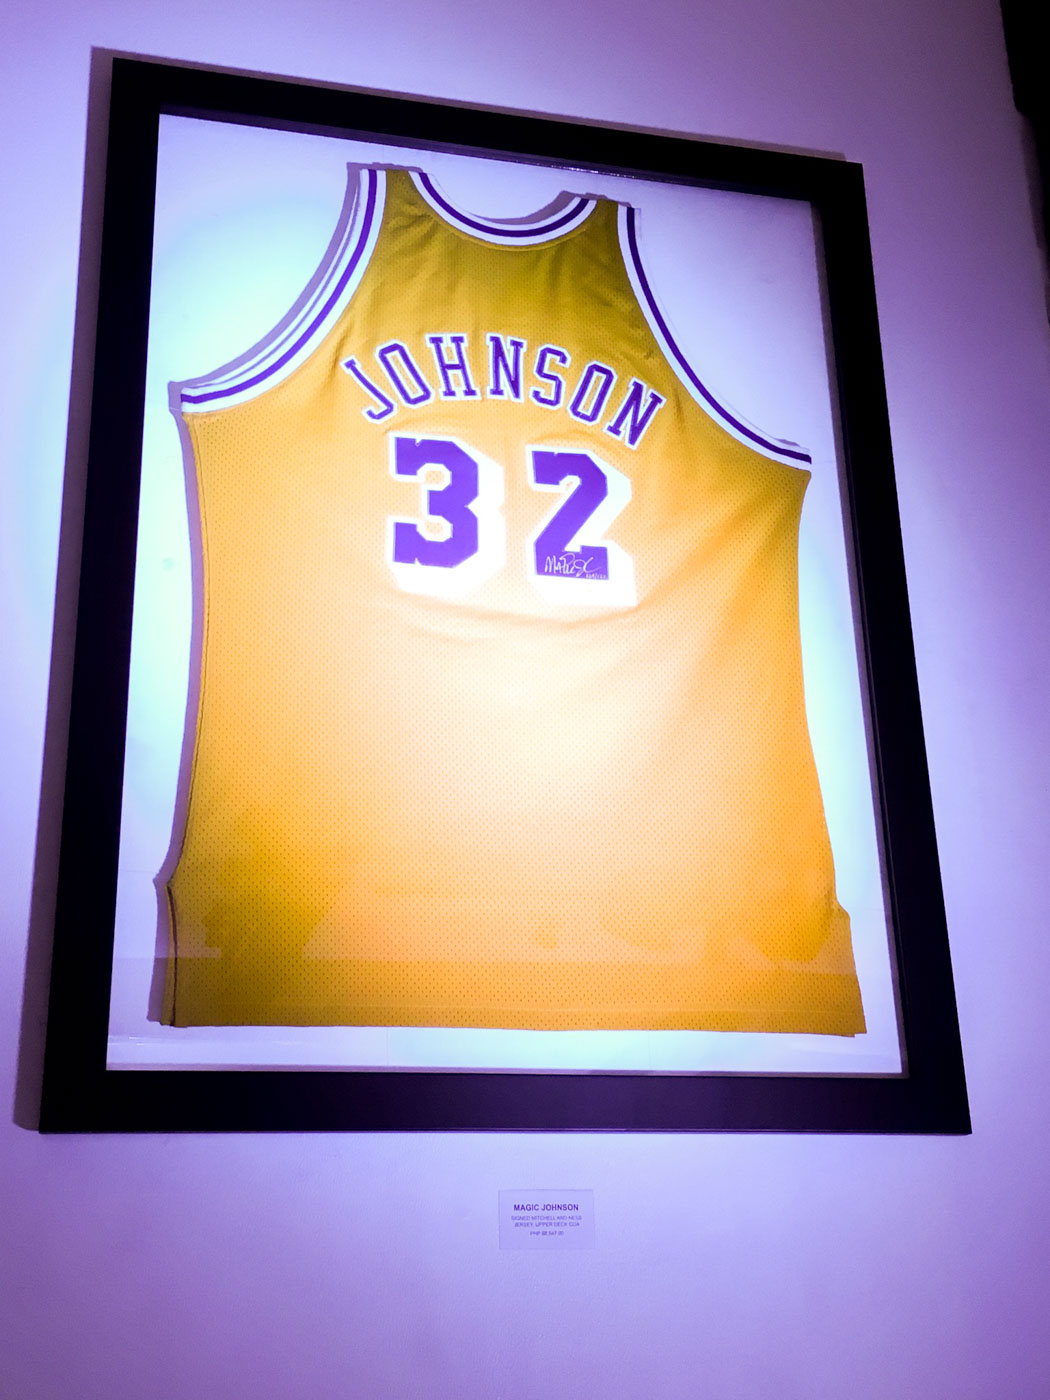 PROUD LAKER. Magic Johnson spent his whole NBA career with the Los Angeles Lakers and is currently the president of its basketball operations. Photo by Beatrice Go/Rappler